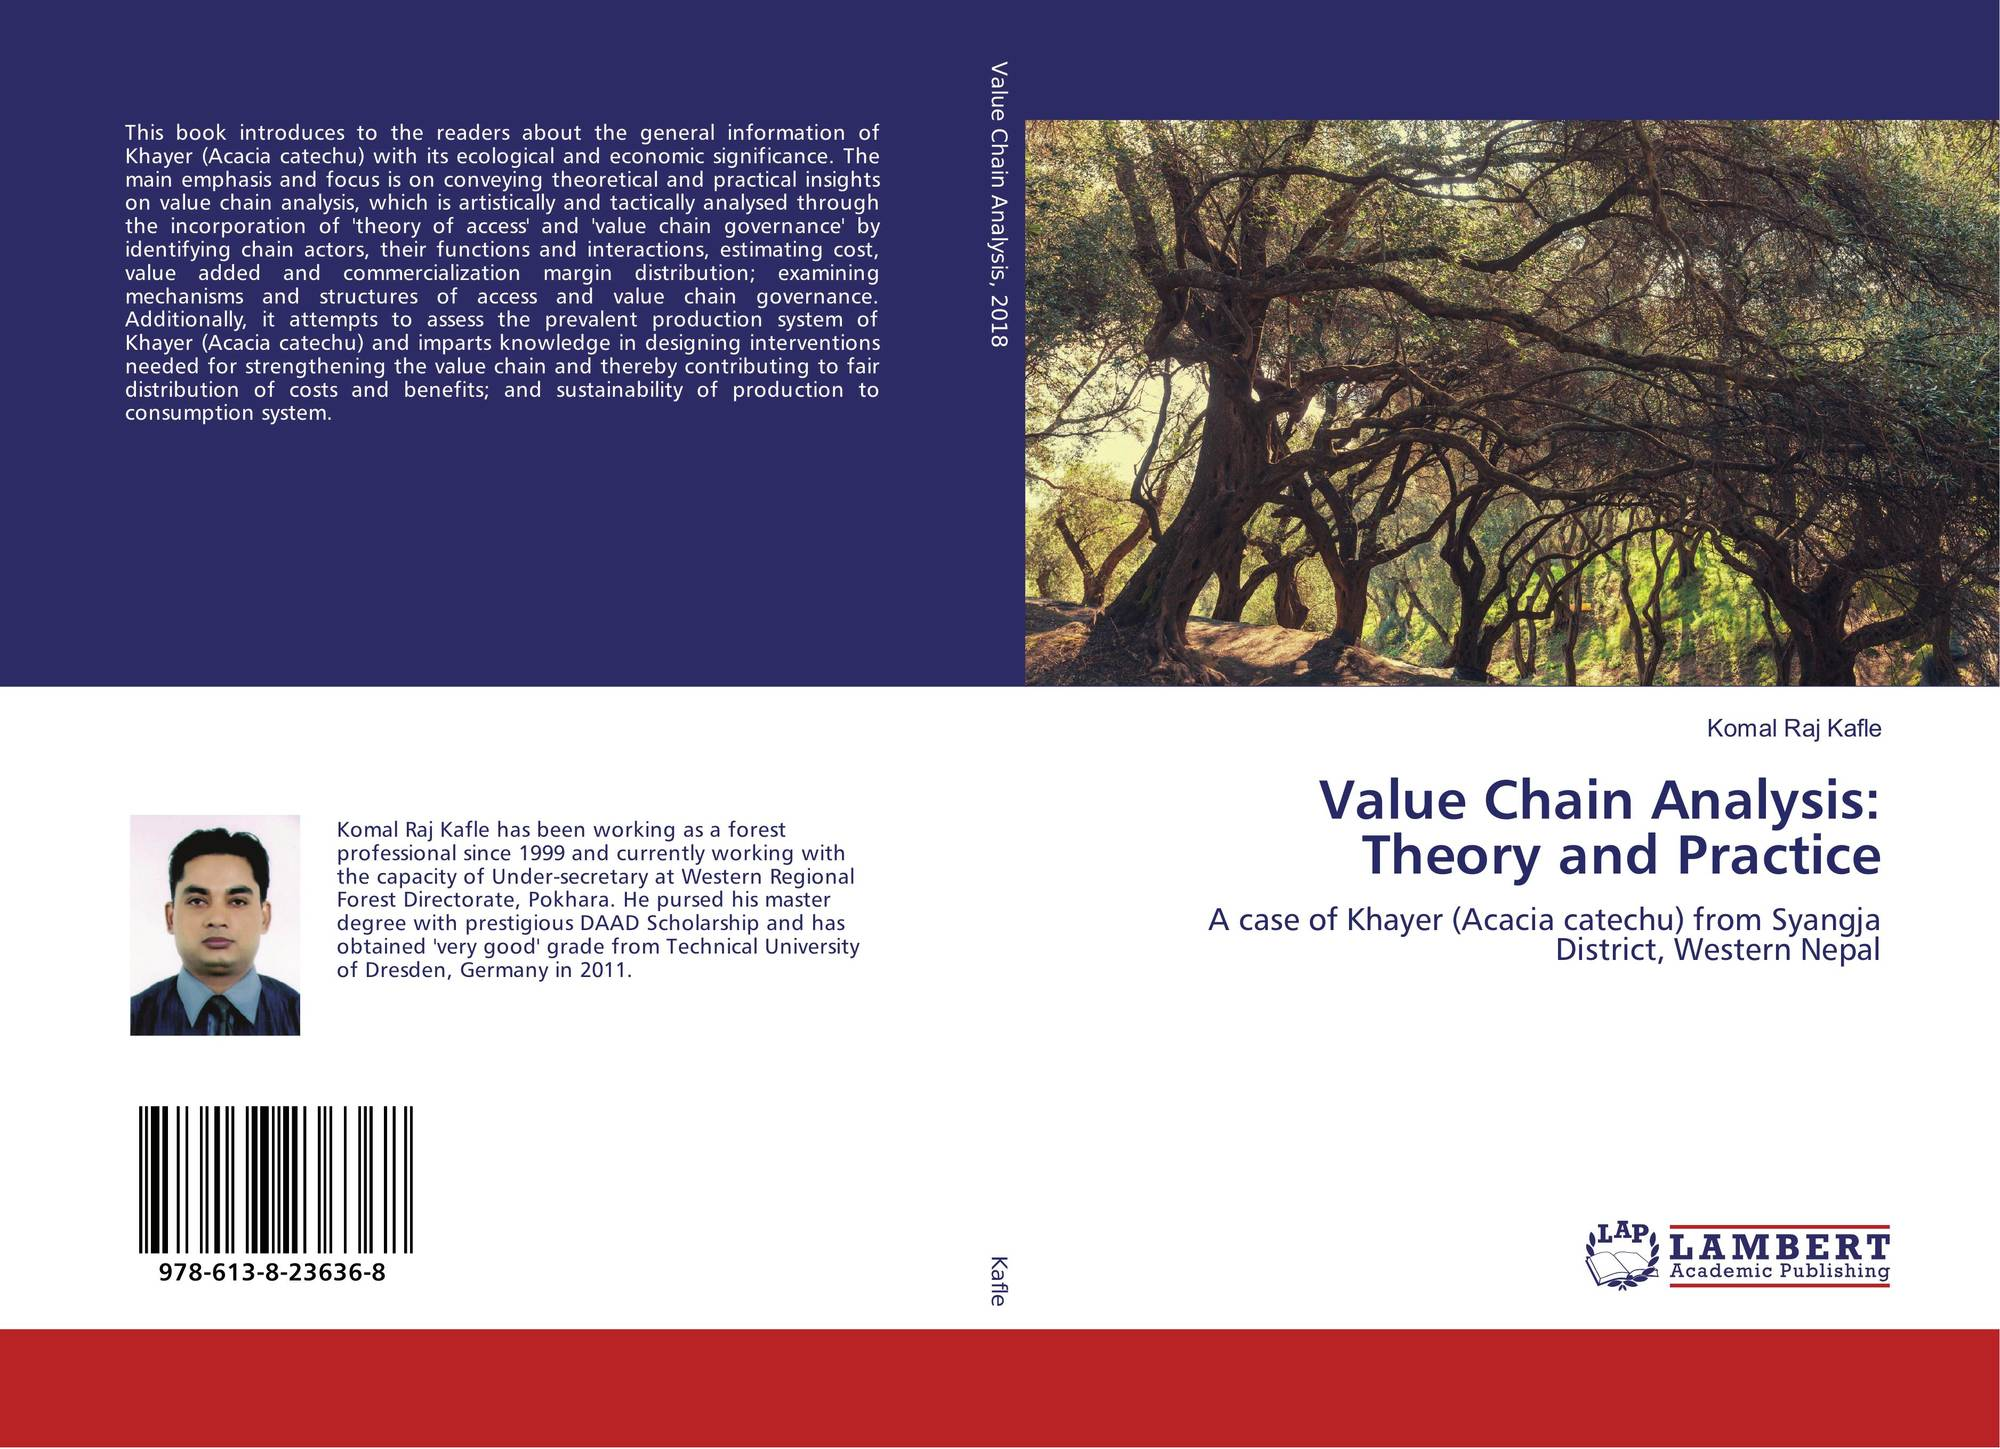 Value Chain Analysis: Theory and Practice, 978-613-8-23636-8